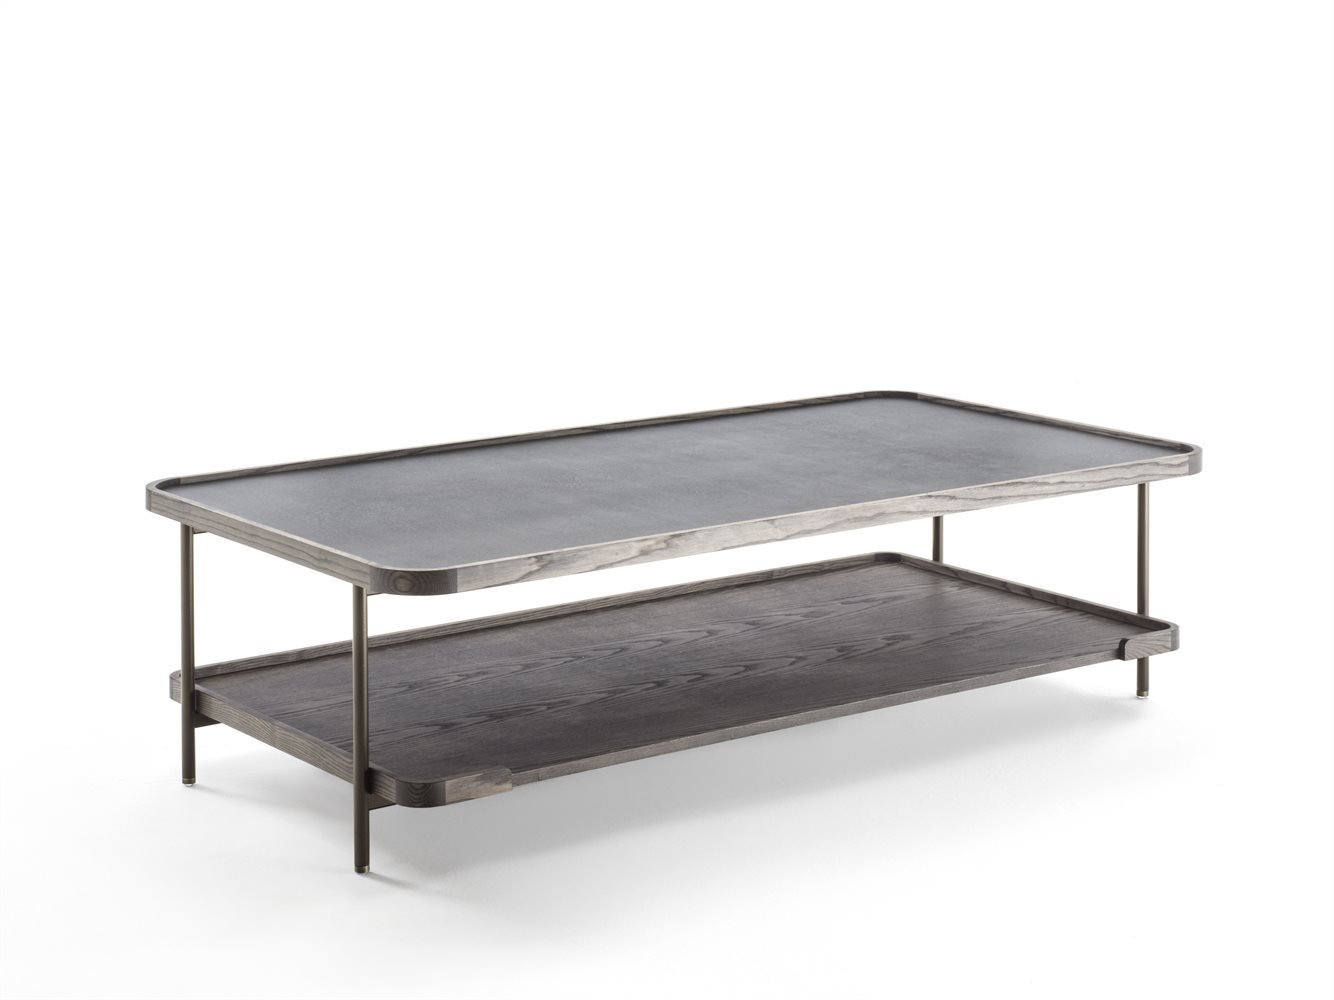 Koster 150x80 Coffee Table from Porada, designed by S. Tollgard